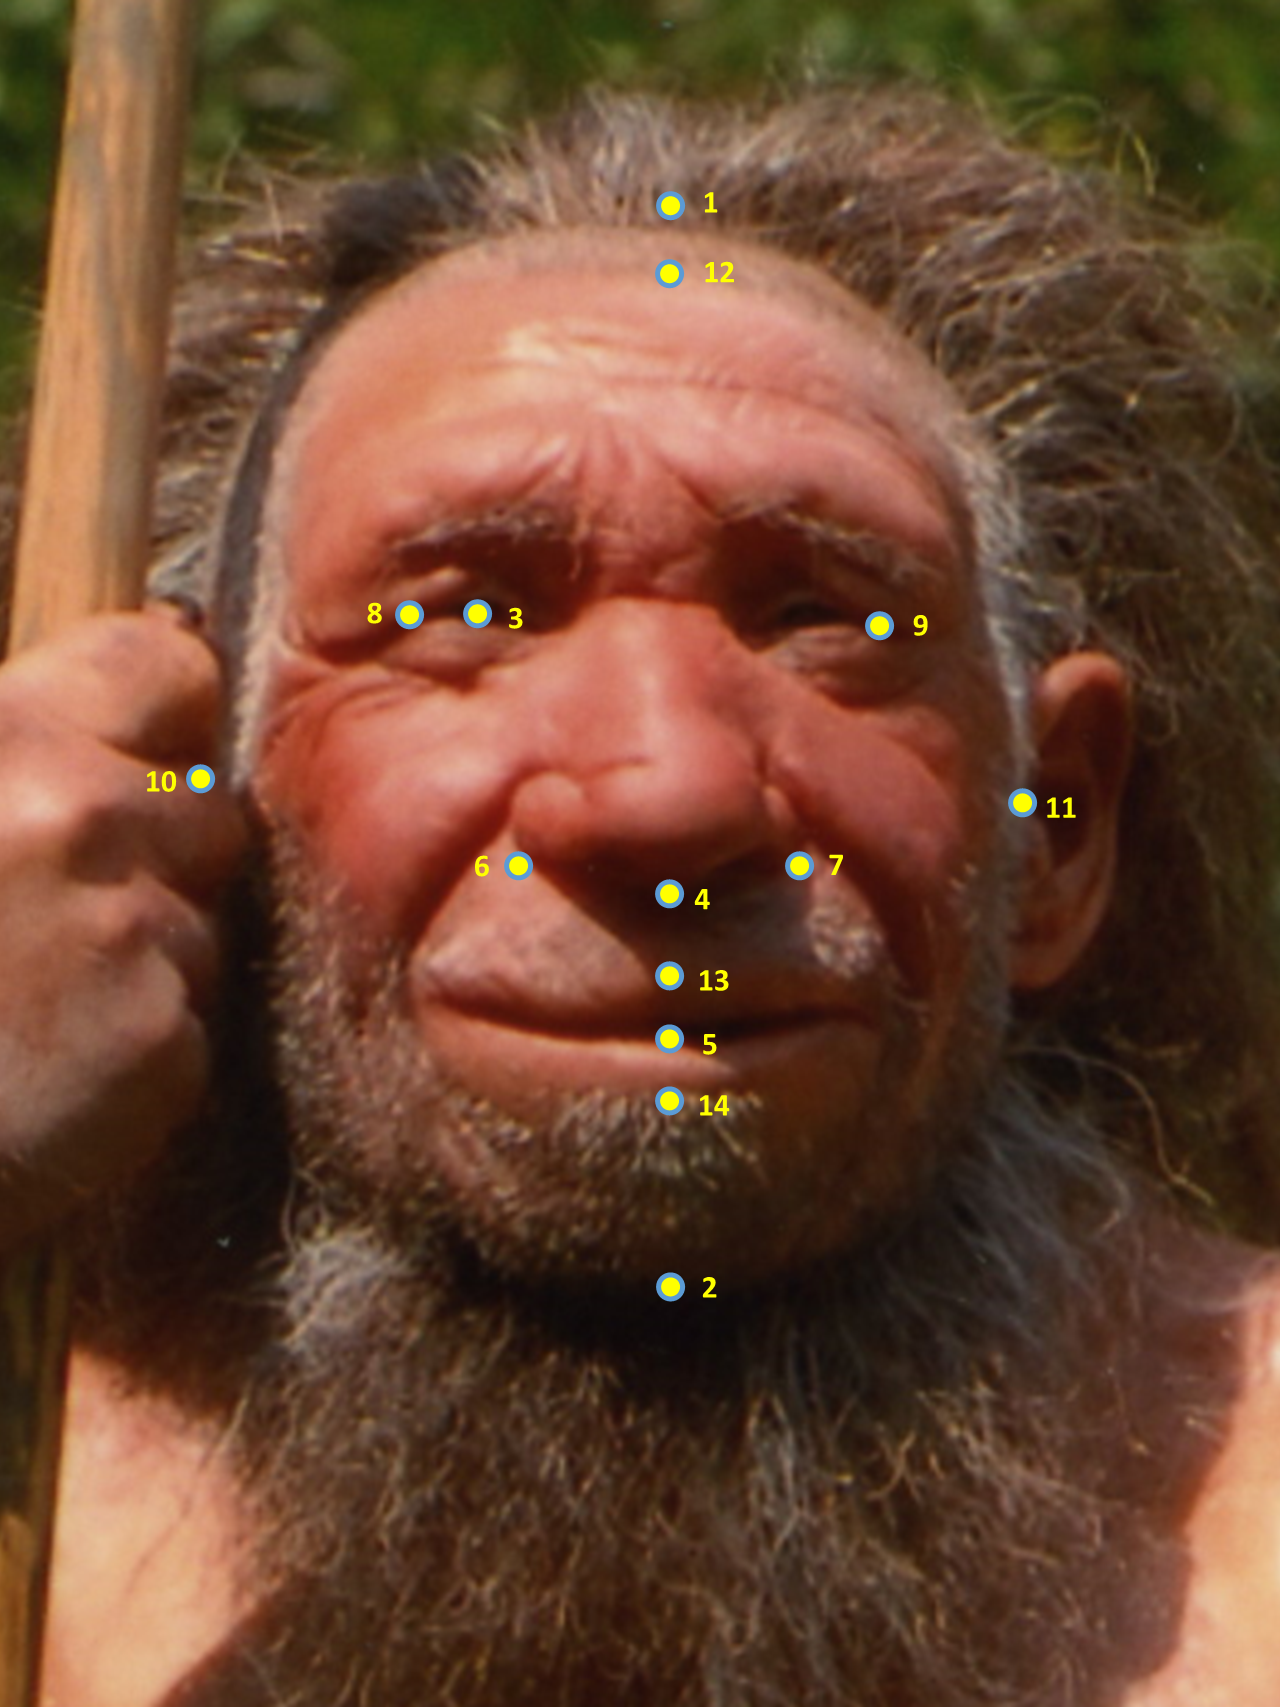 Mr. N, with facial dimension measurement points added